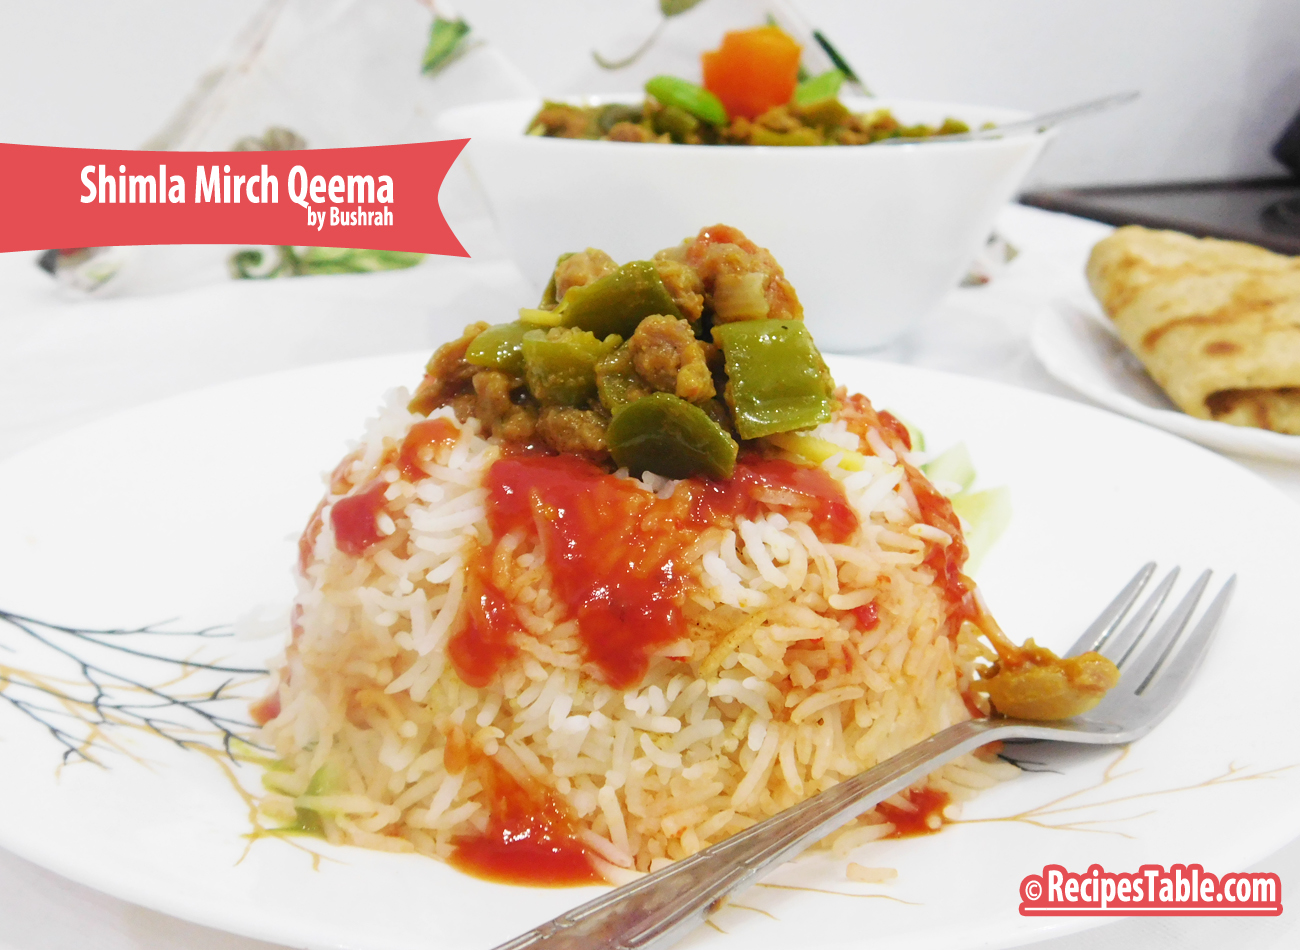 Shimla Mirch Qeema (Mince with capsicum)